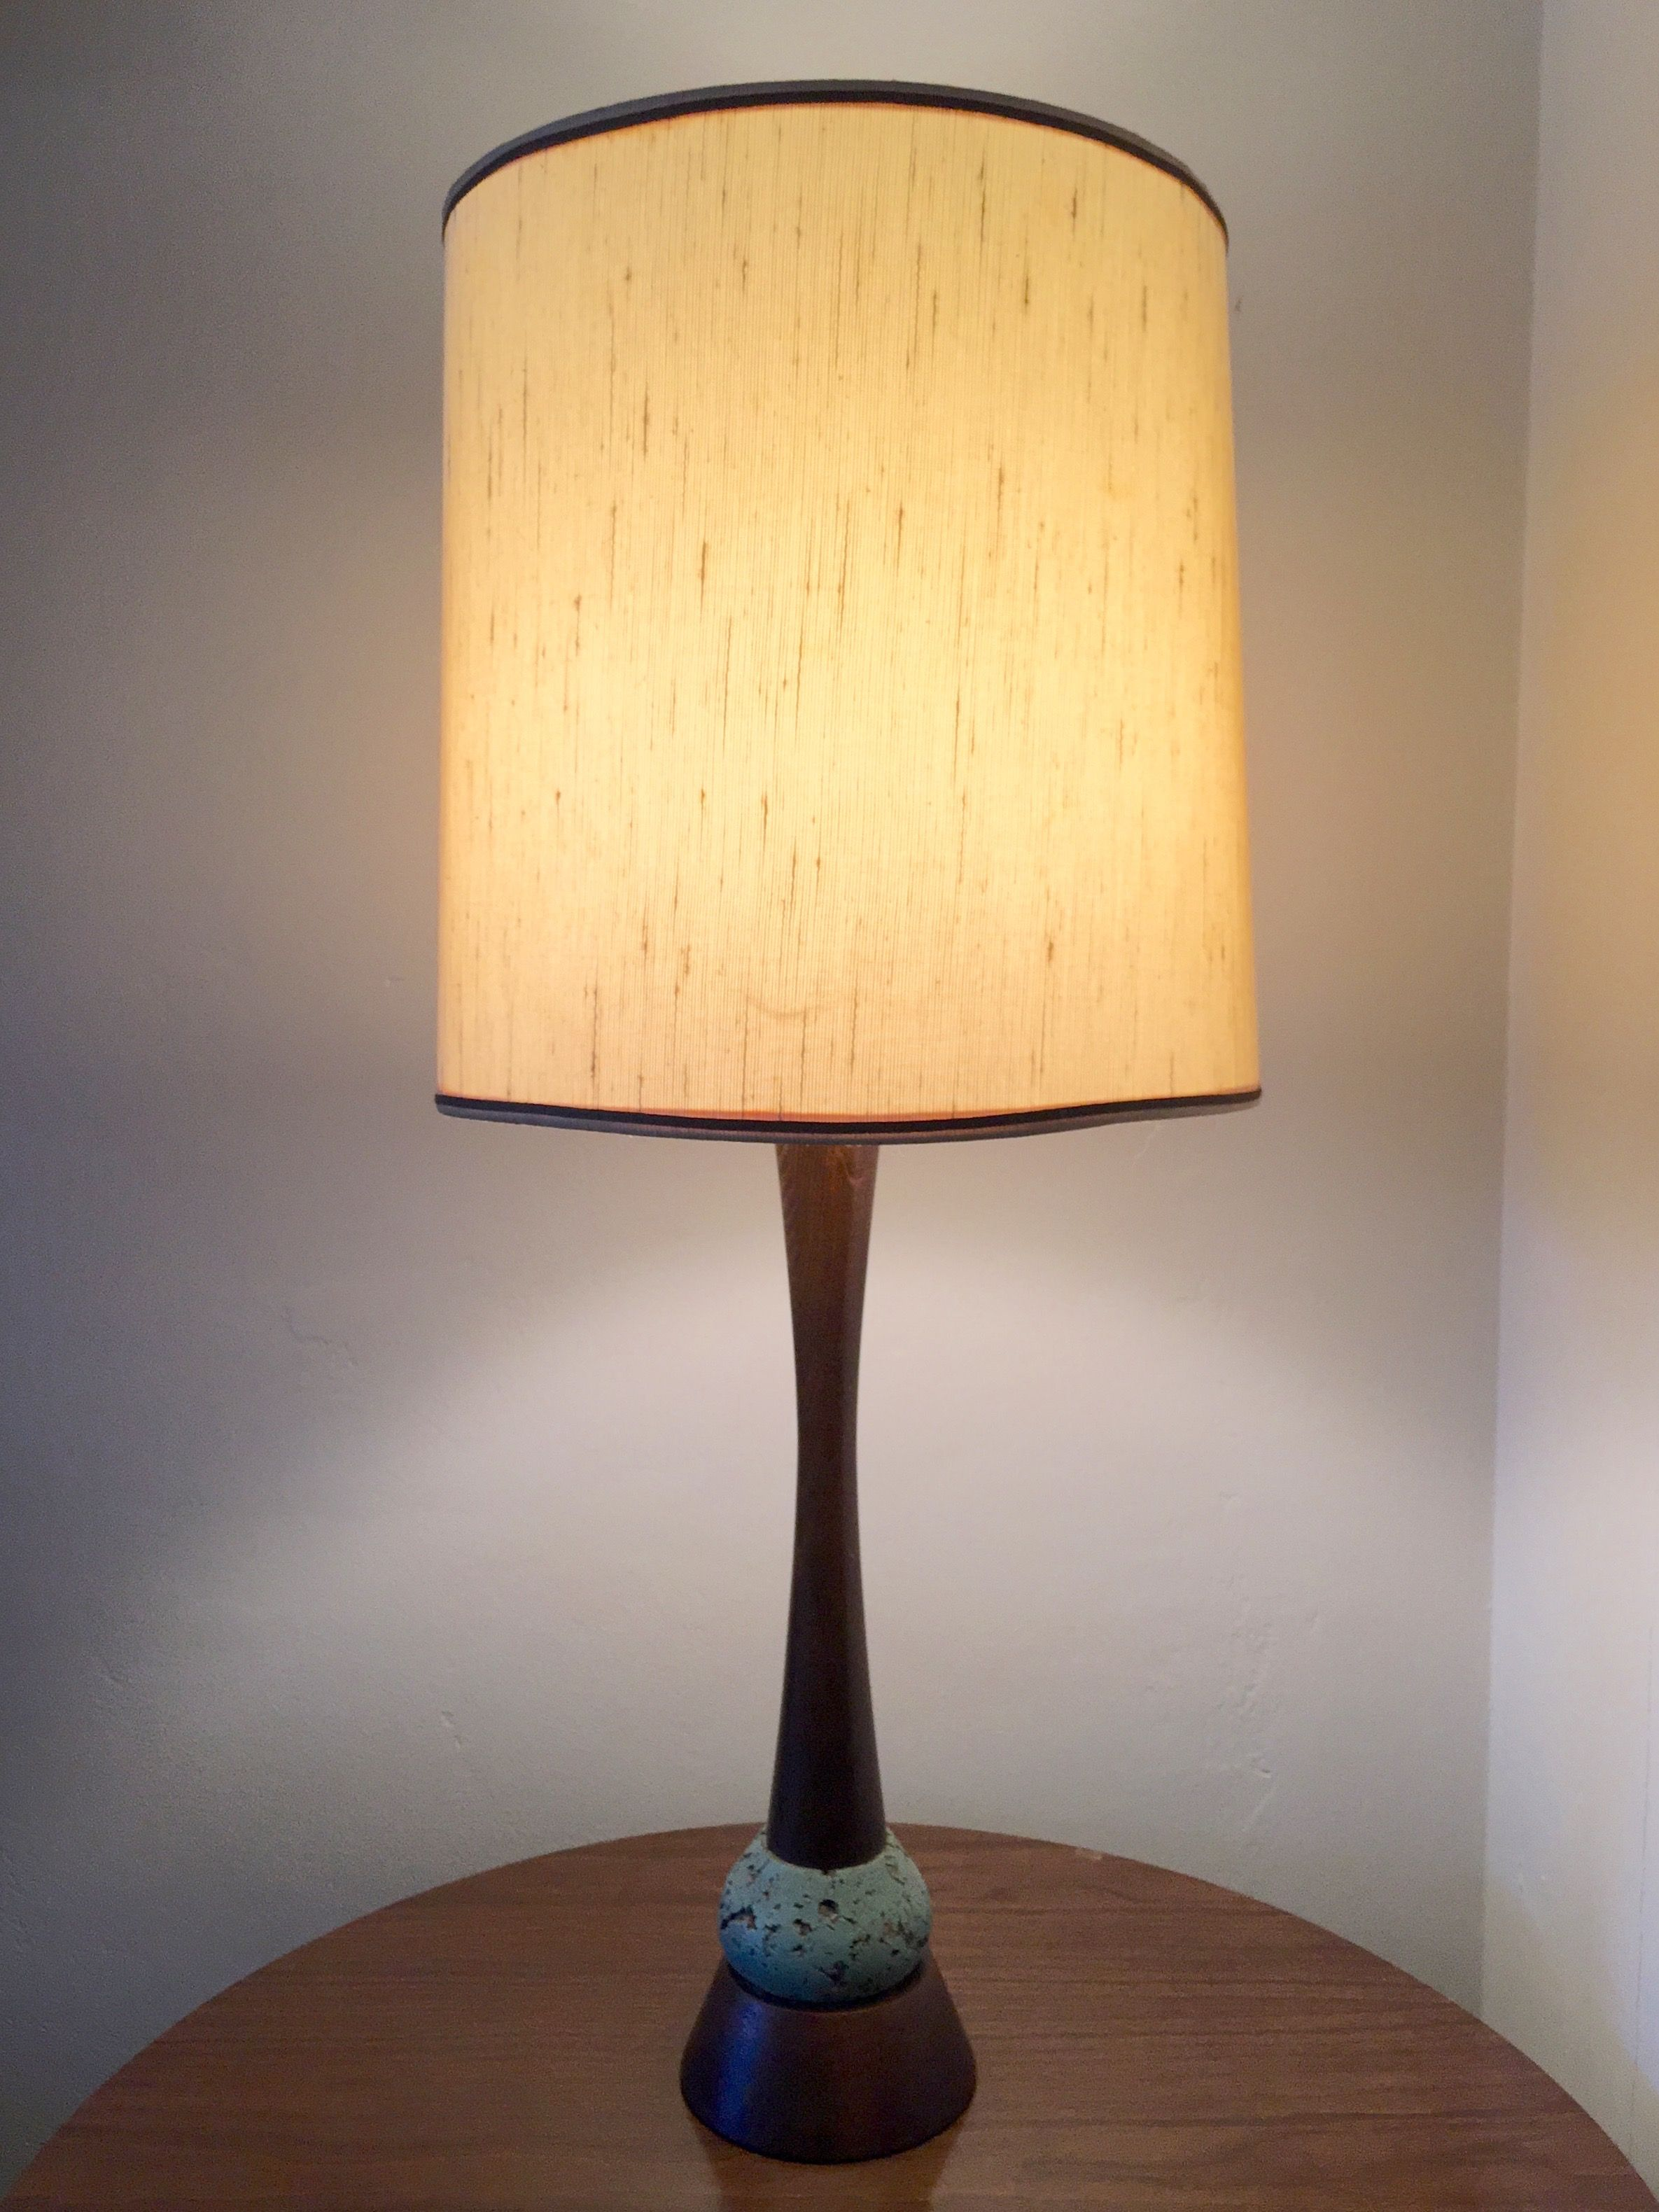 Lynard of california cork and walnut mid century modern table lamp lynard of california cork and walnut mid century modern table lamp geotapseo Image collections